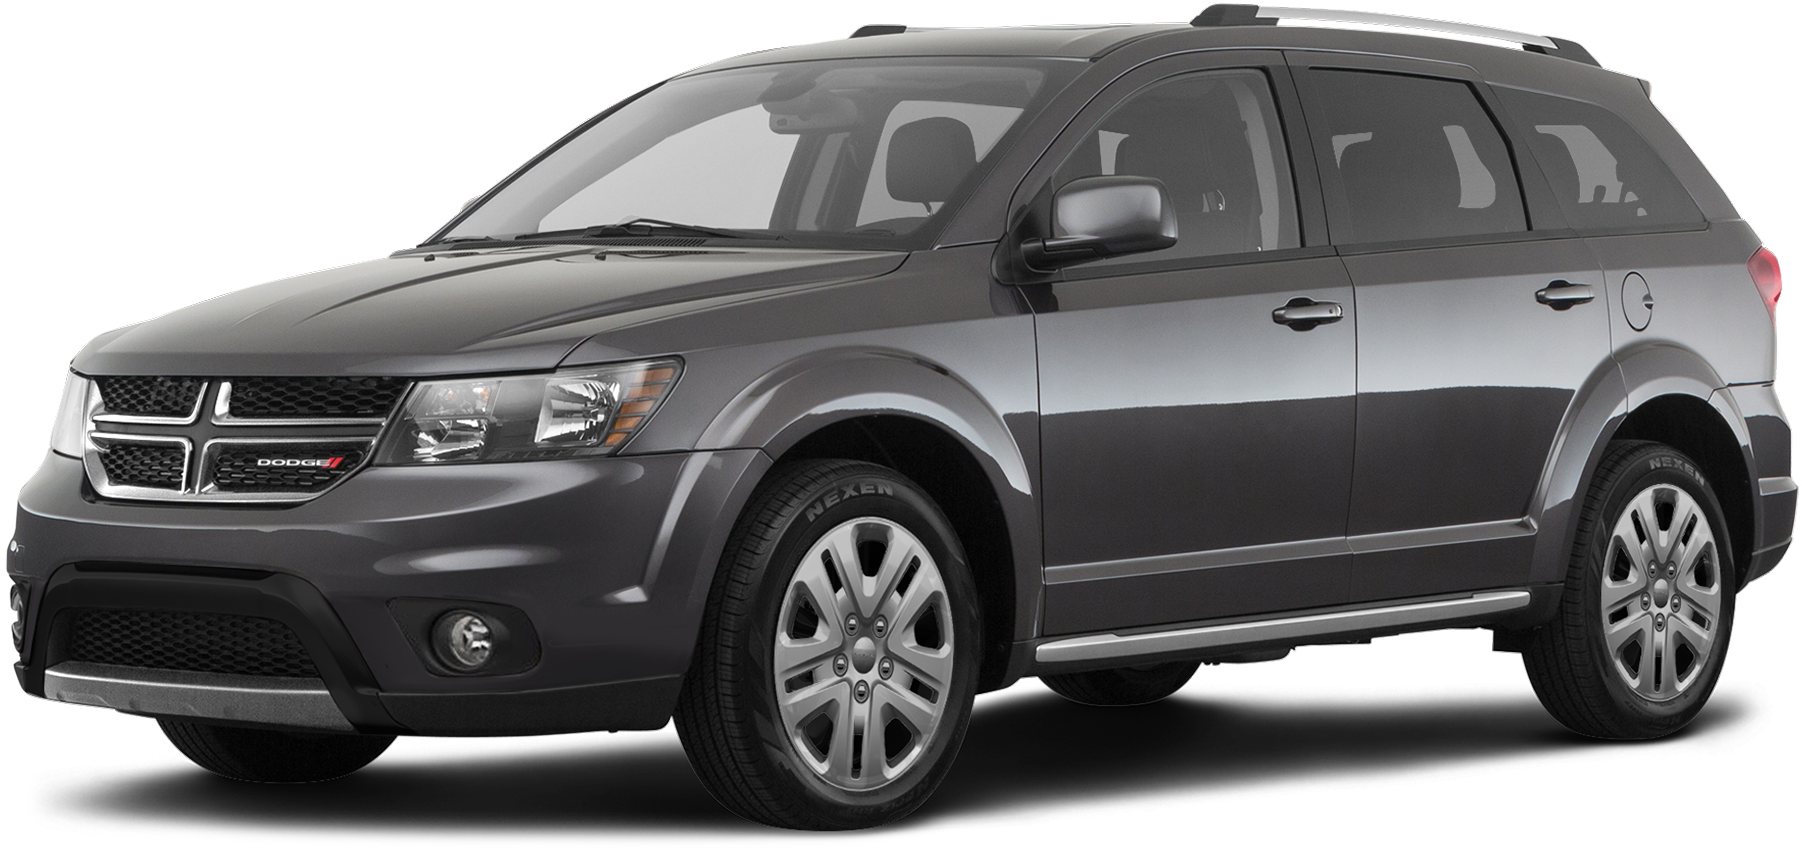 Review & Compare Dodge Journey at Larry H. Miller Dodge Ram Tucson